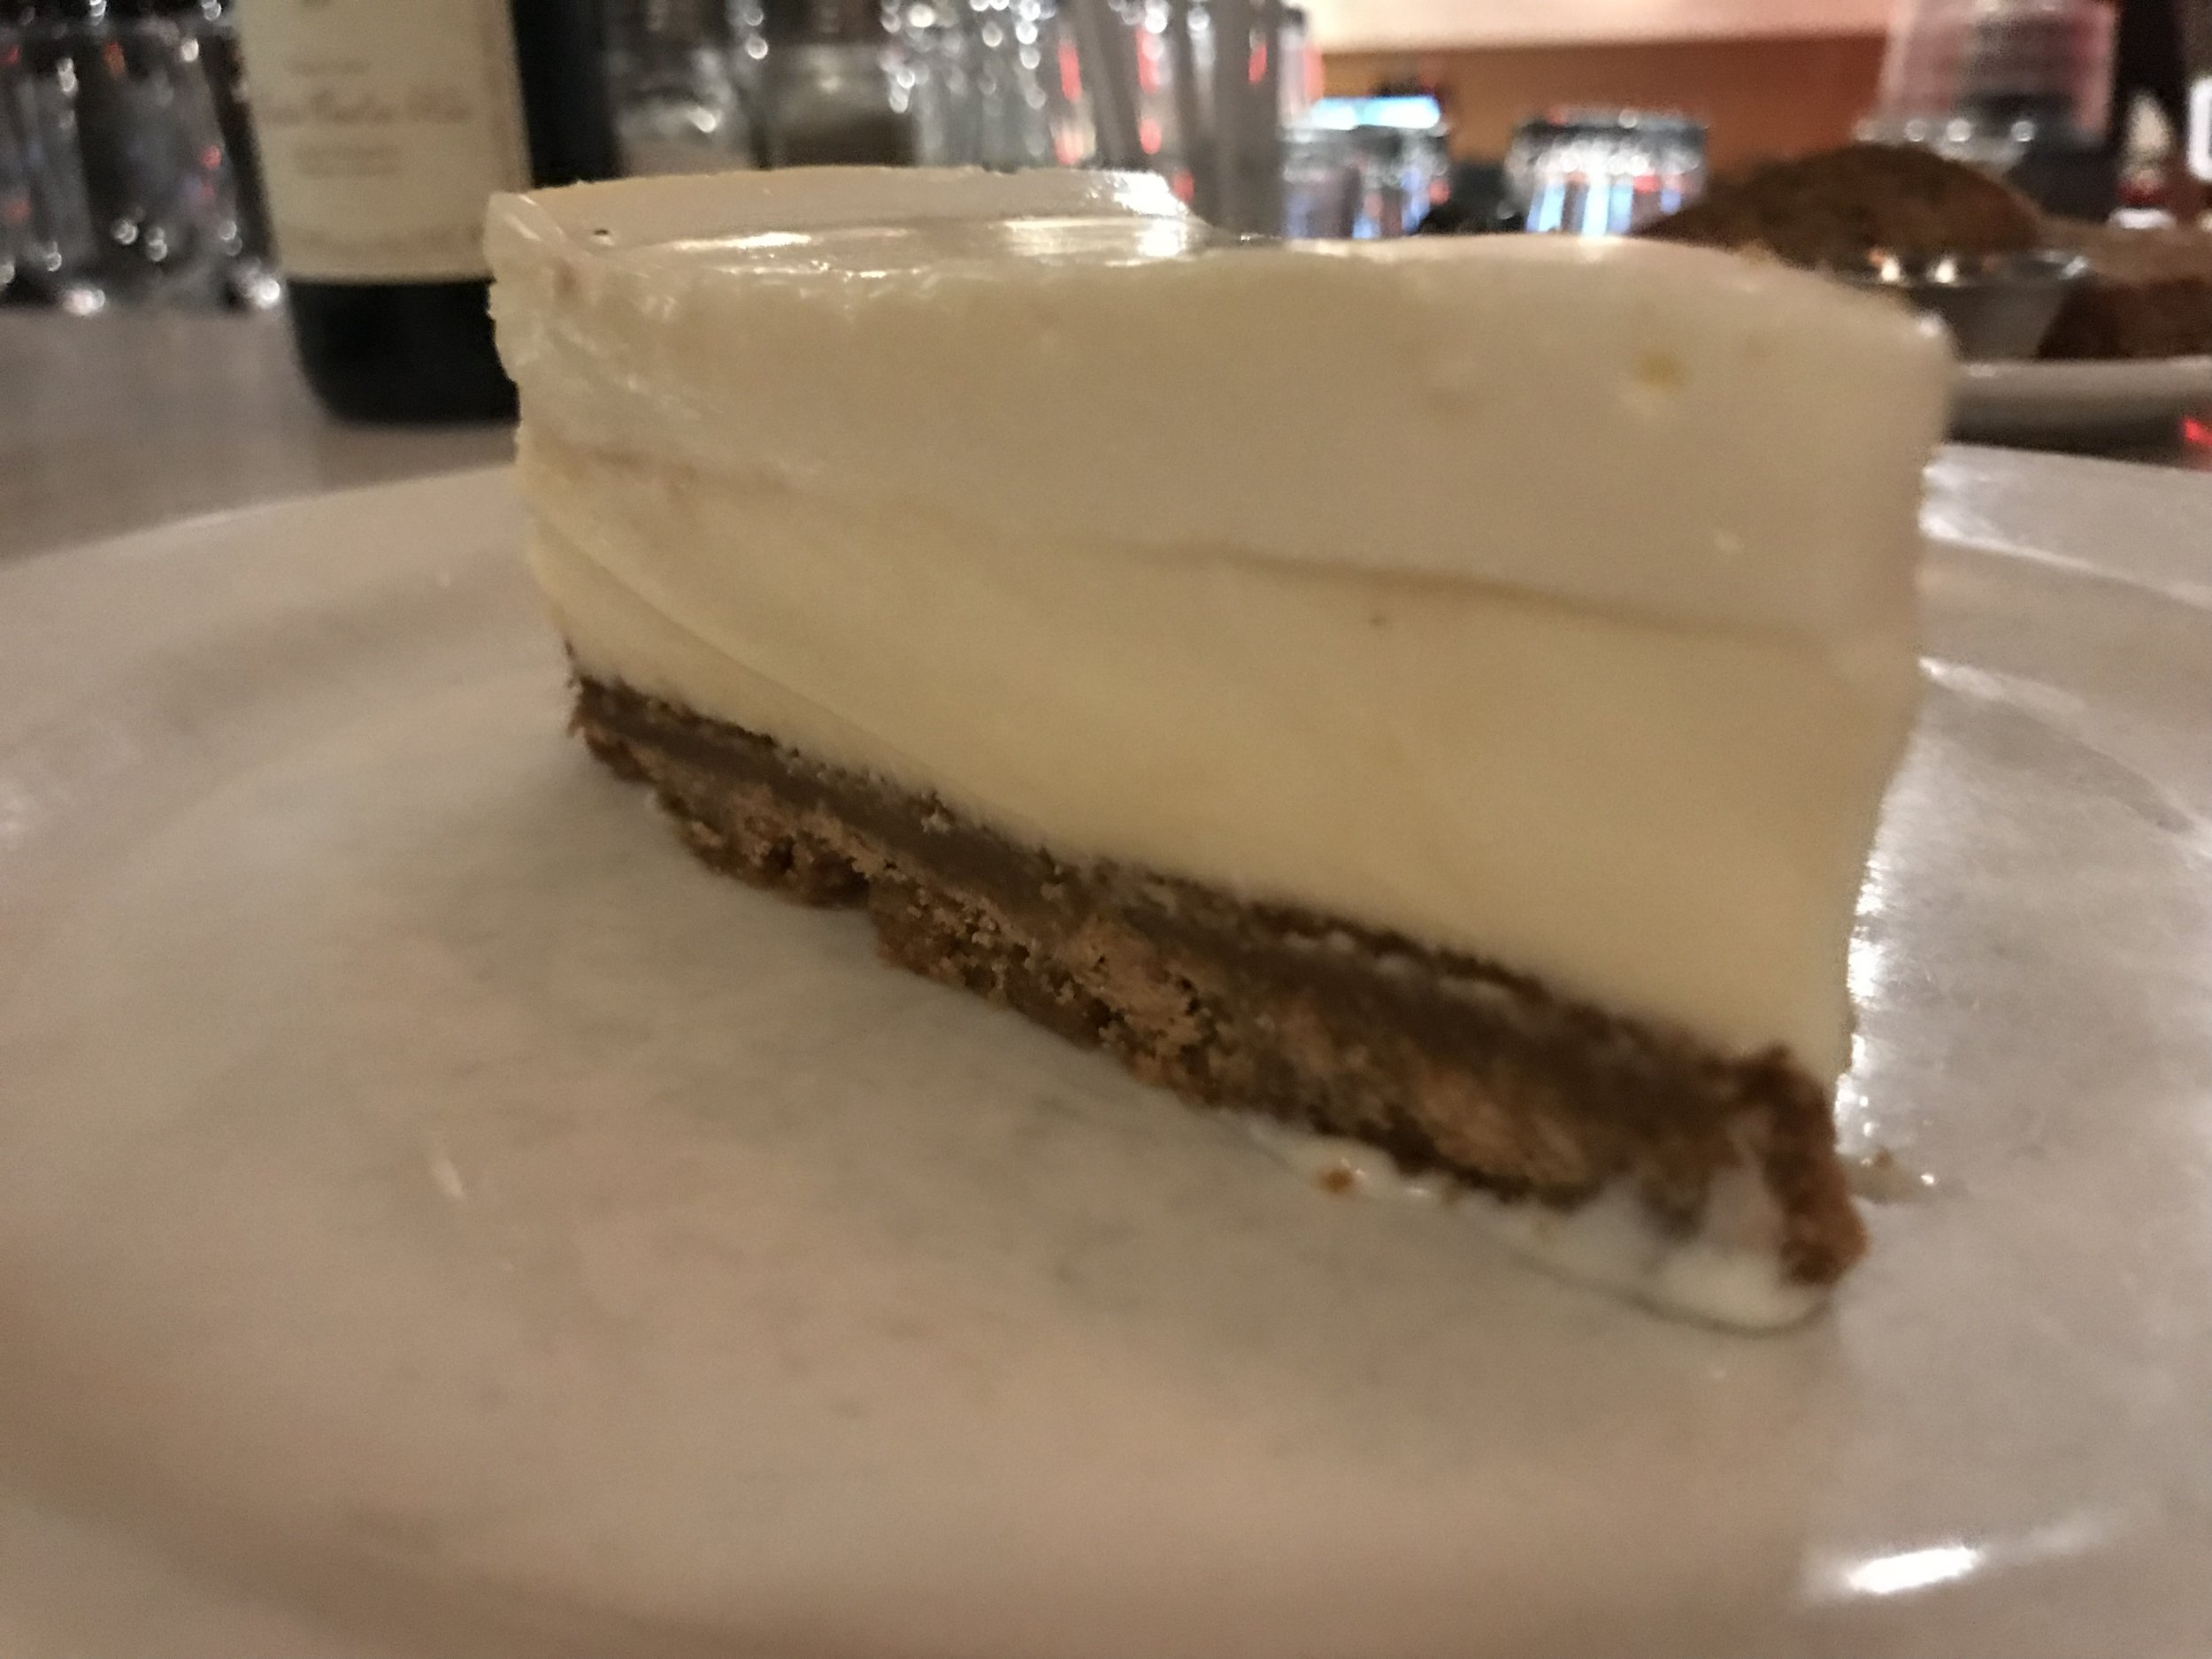 Cheesecake dreams realized.